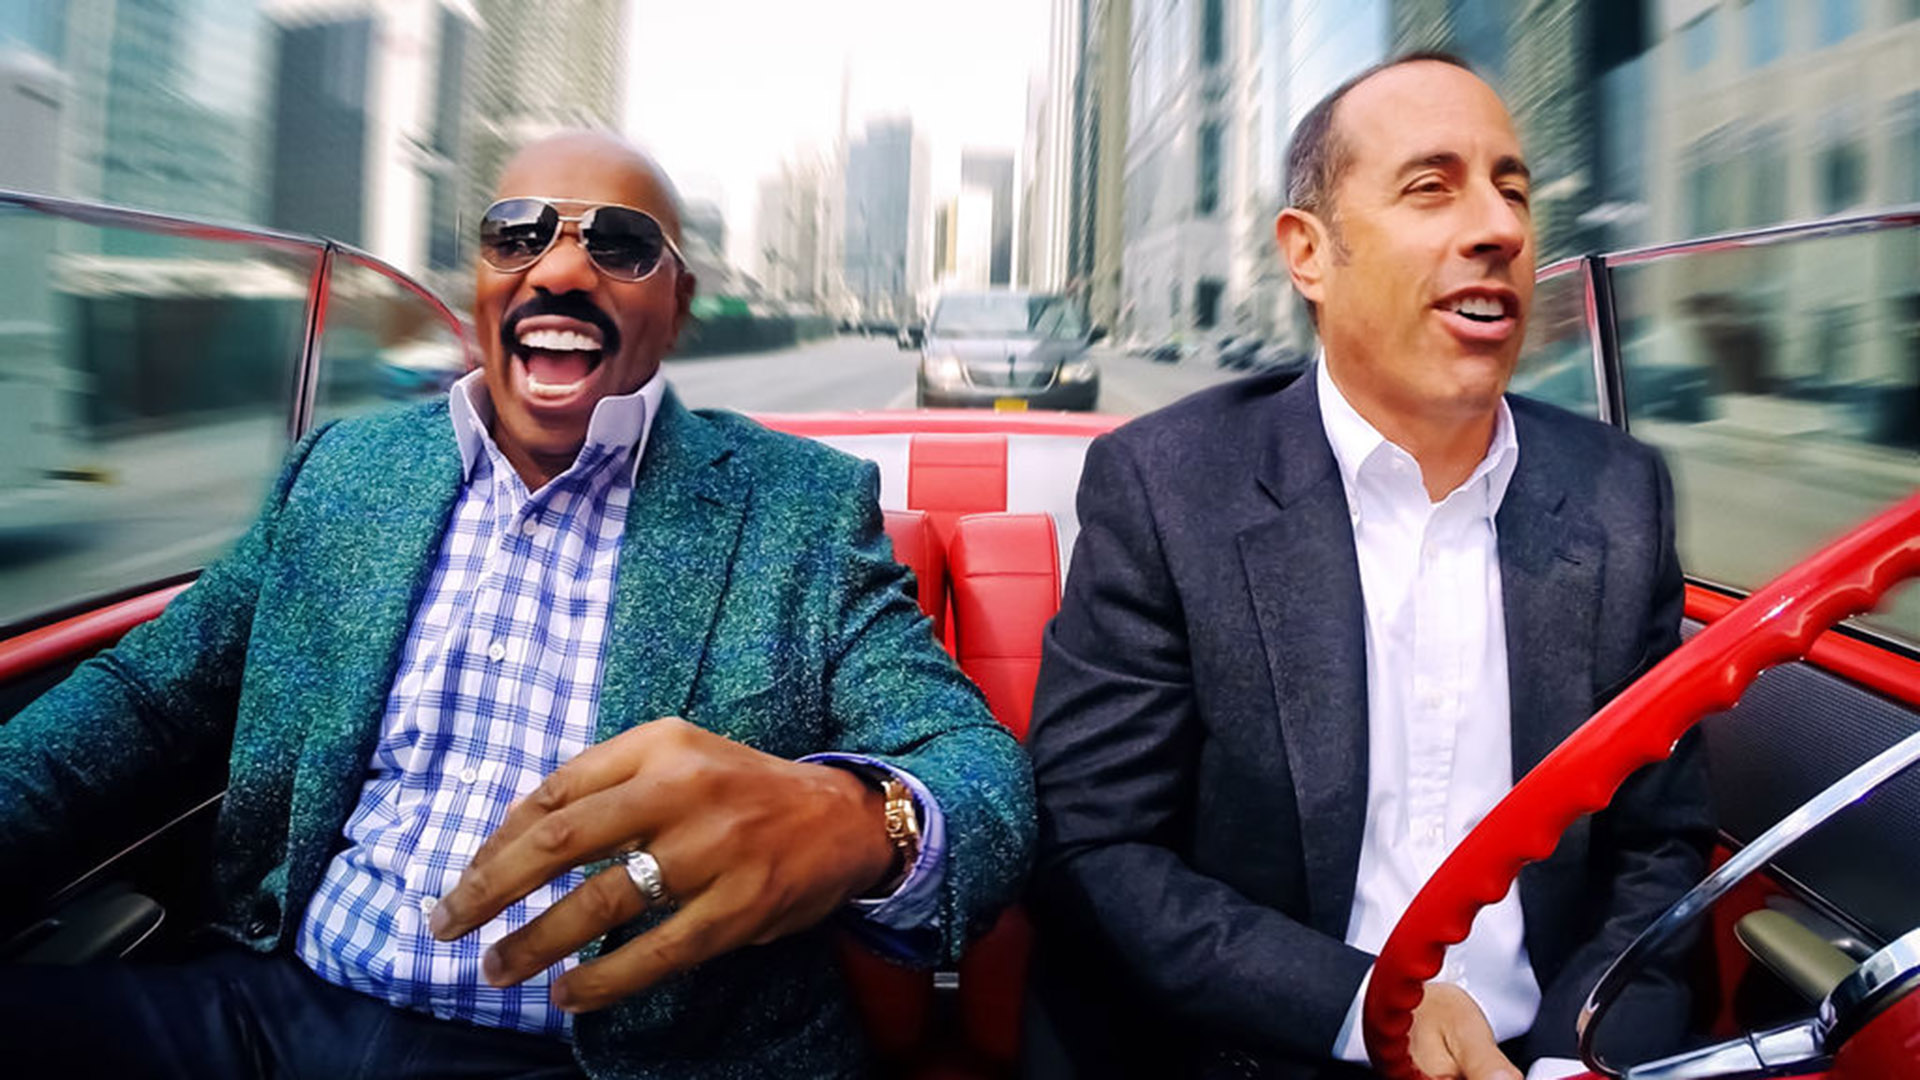 """Comedians in cars getting coffee"""